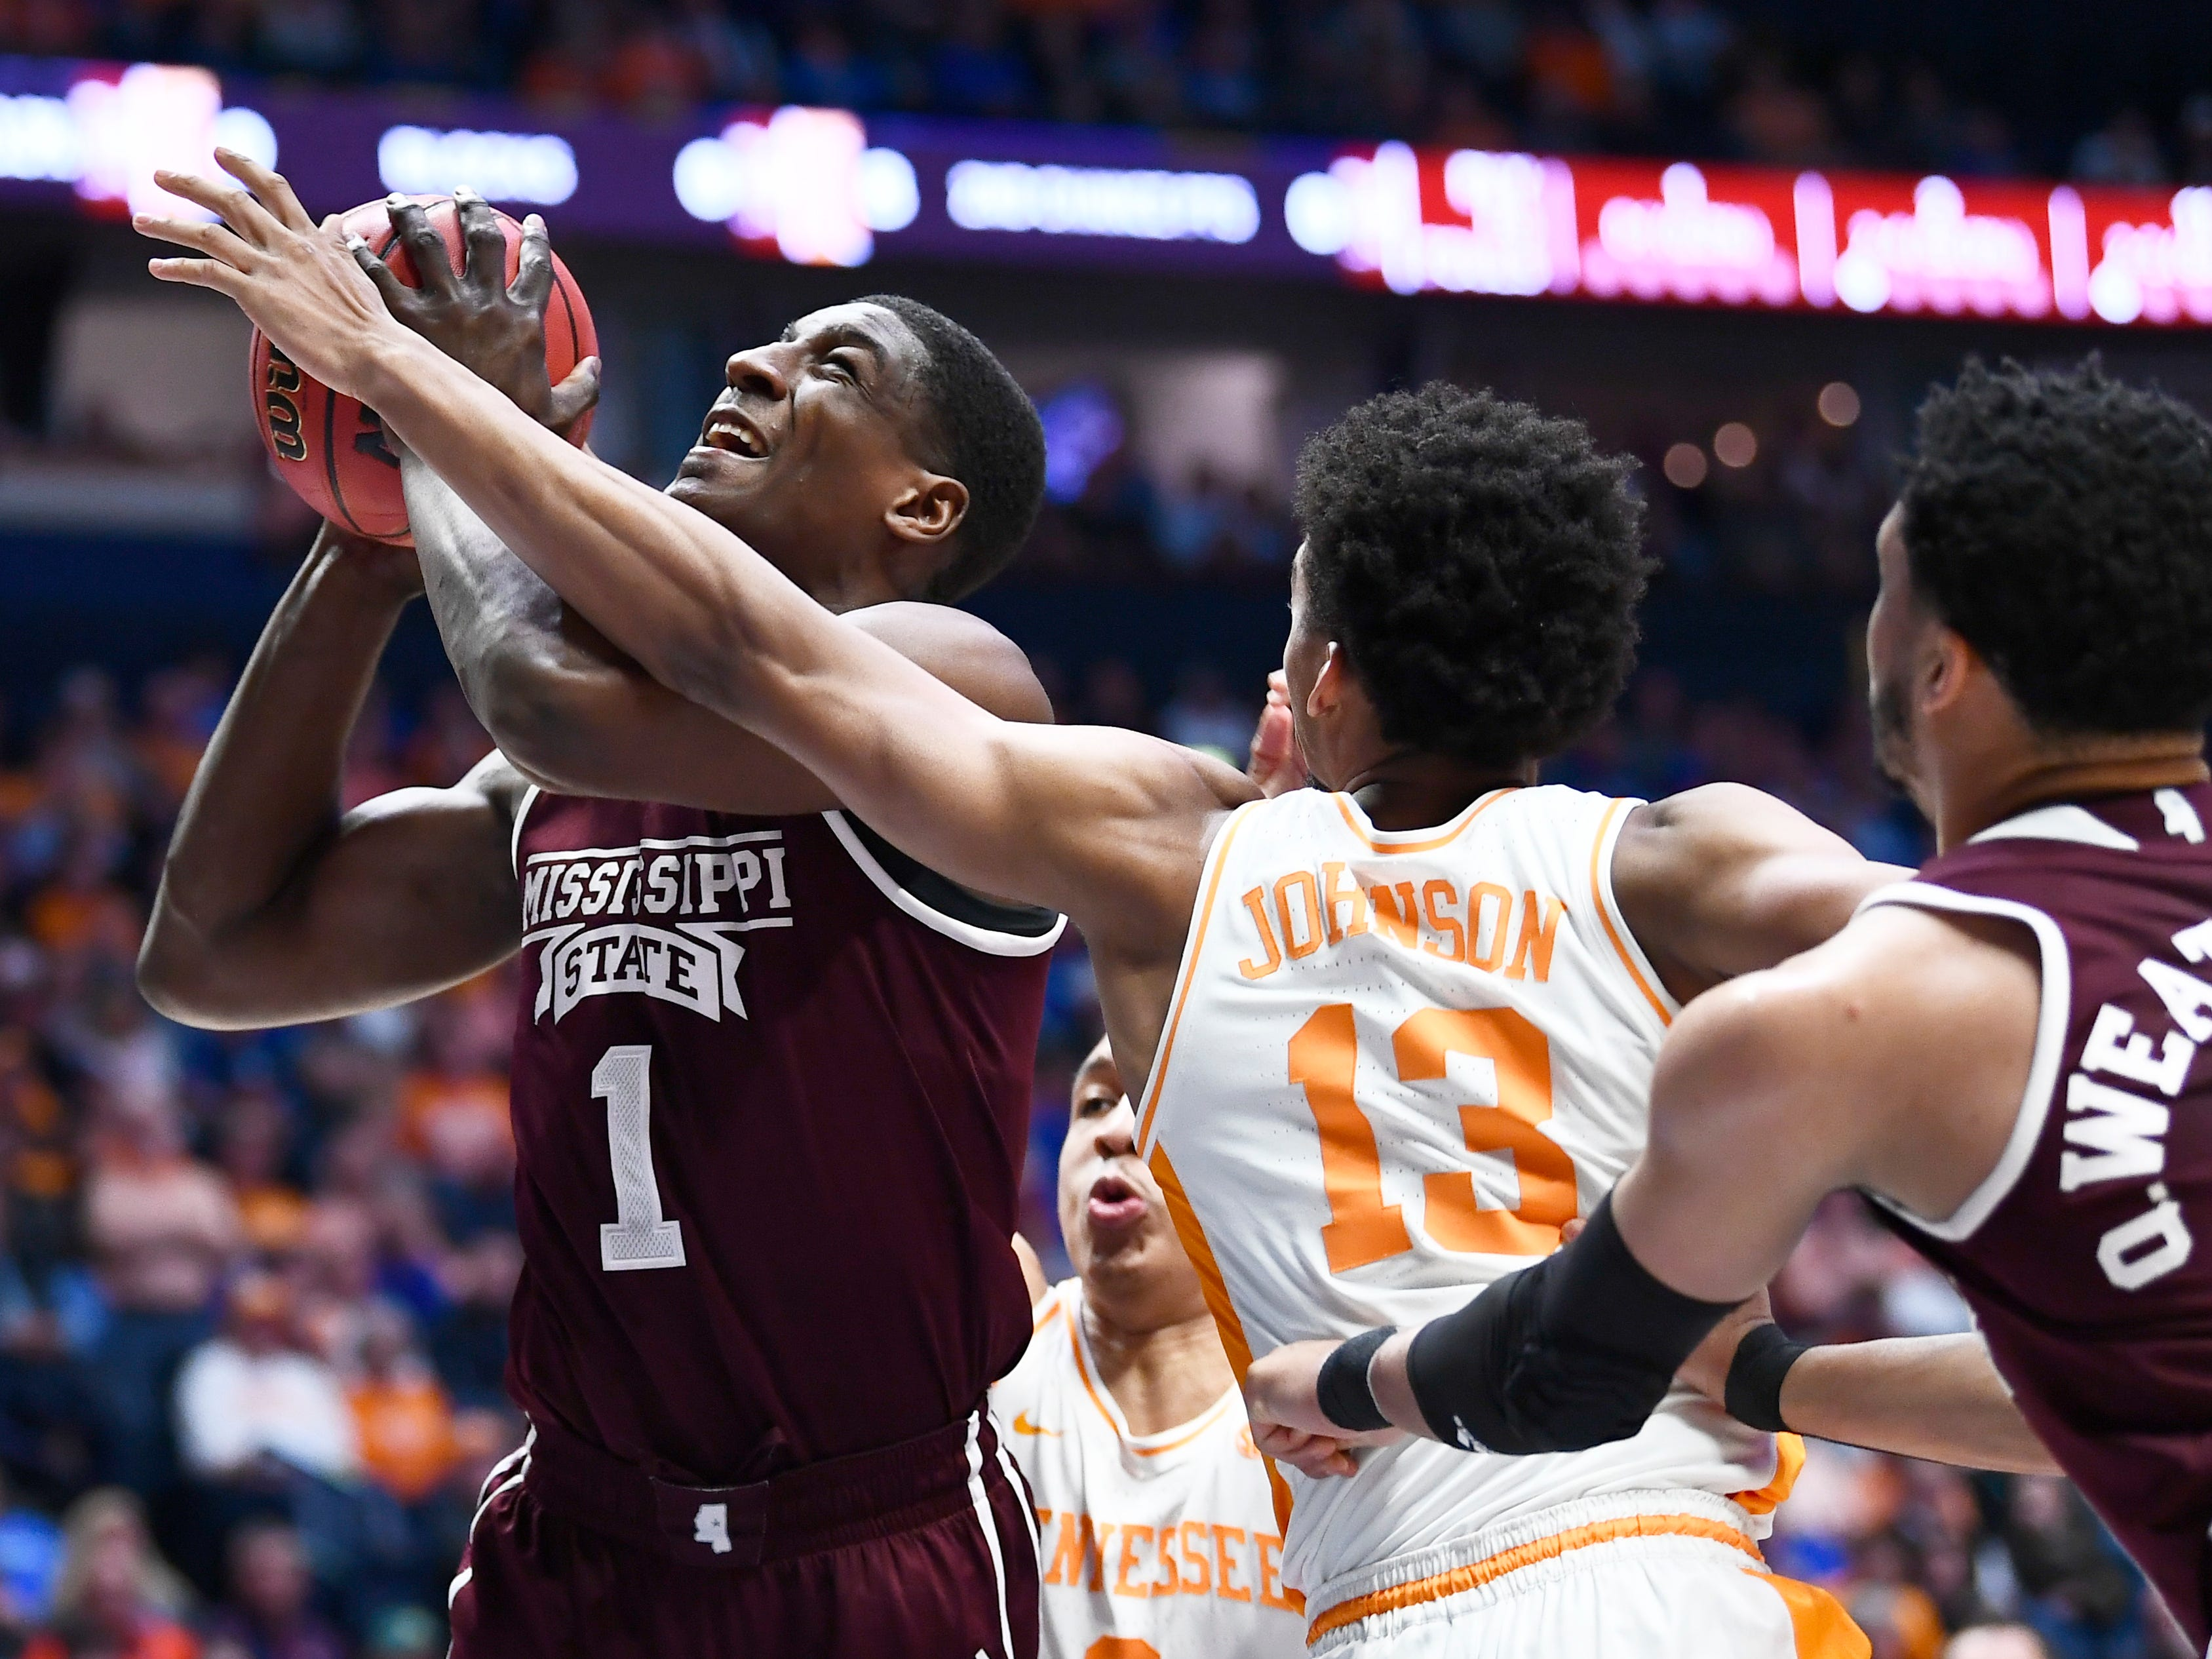 Mississippi State forward Reggie Perry (1) is fouled on the play while defended by Tennessee guards Admiral Schofield (5) and Jalen Johnson (13) during the first half of the SEC Men's Basketball Tournament game at Bridgestone Arena in Nashville, Tenn., Friday, March 15, 2019.